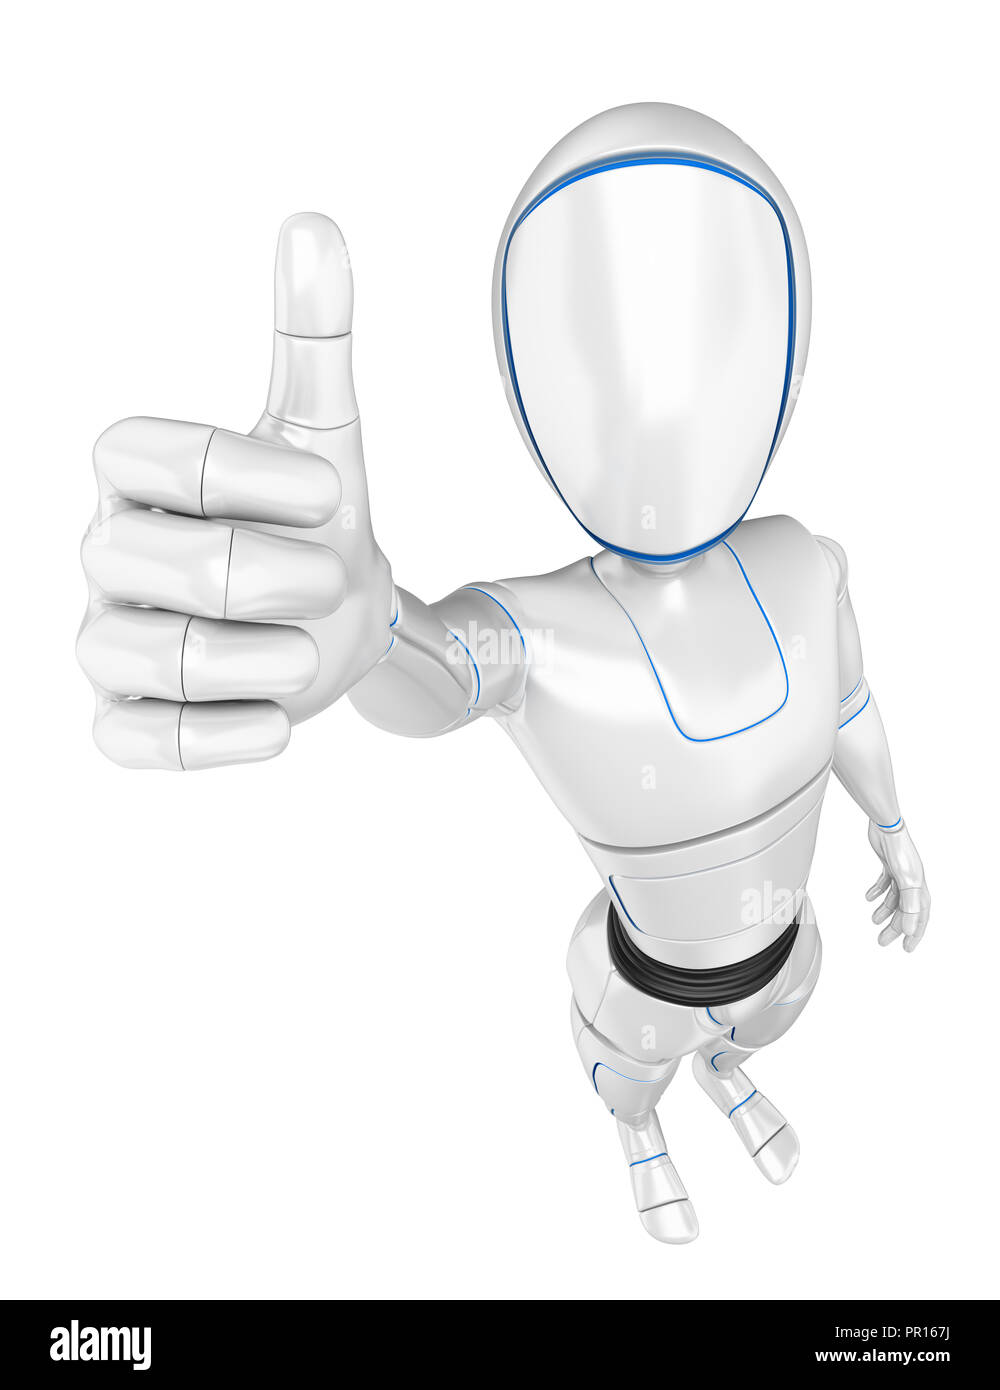 3d futuristic android illustration. Humanoid robot with thumb up. Isolated white background. - Stock Image